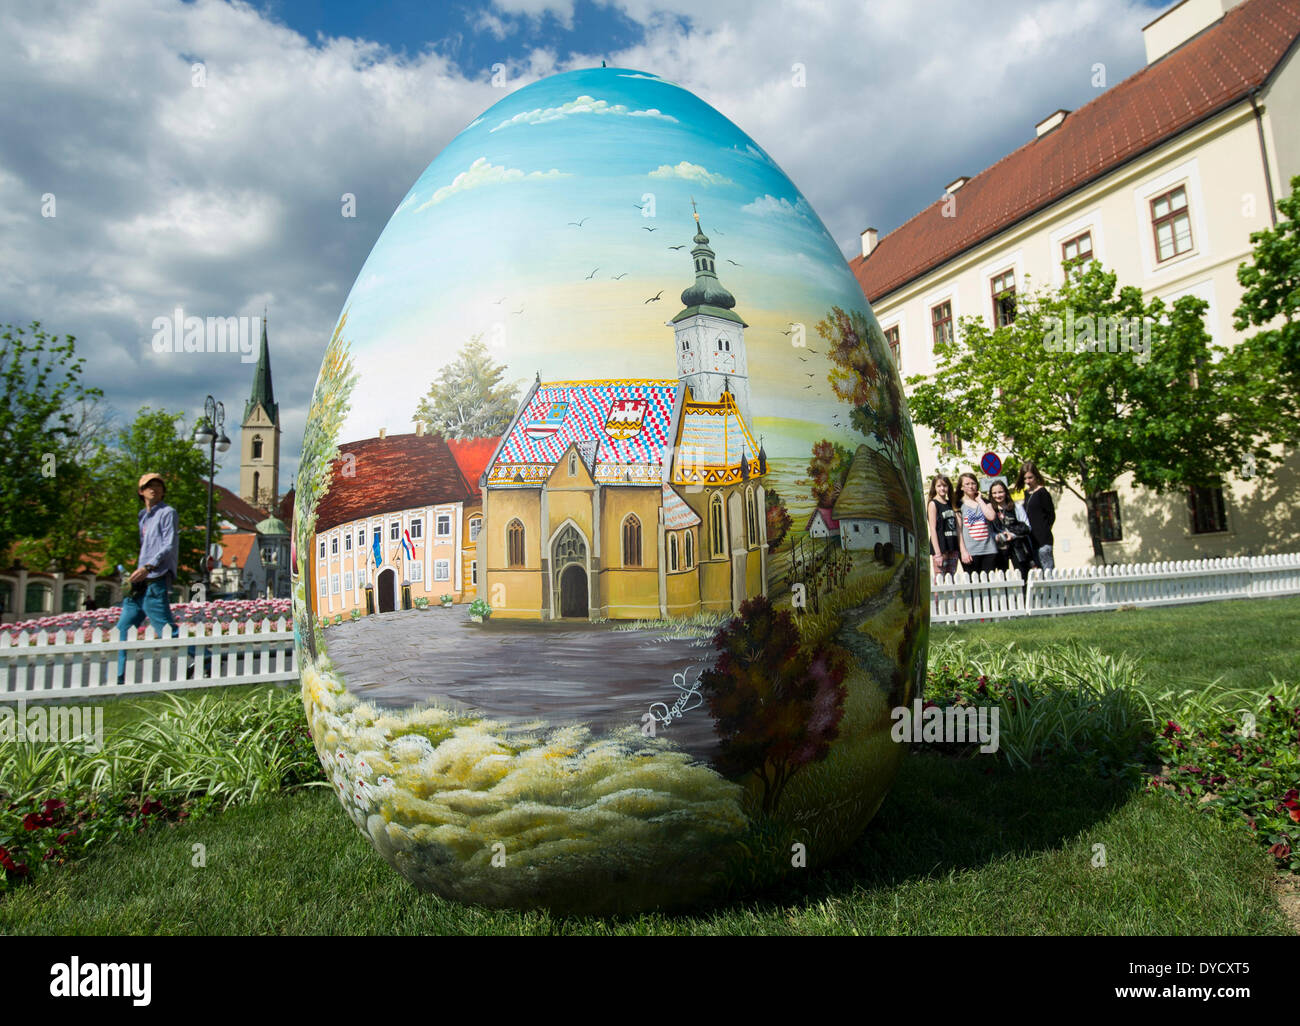 Zagreb, Croatia. 14th Apr, 2014. Photo taken on April 14, 2014 shows a huge hand-painted Easter egg on display near the Zagreb Cathedral on Kaptol in Zagreb, capital of Croatia, April 14, 2014. Several Easter eggs, painted in Croatian Naive art style by artists from the Koprivnica-Krizevci County, were set up in downtown Zagreb to celebrate Easter. © Miso Lisanin/Xinhua/Alamy Live News - Stock Image